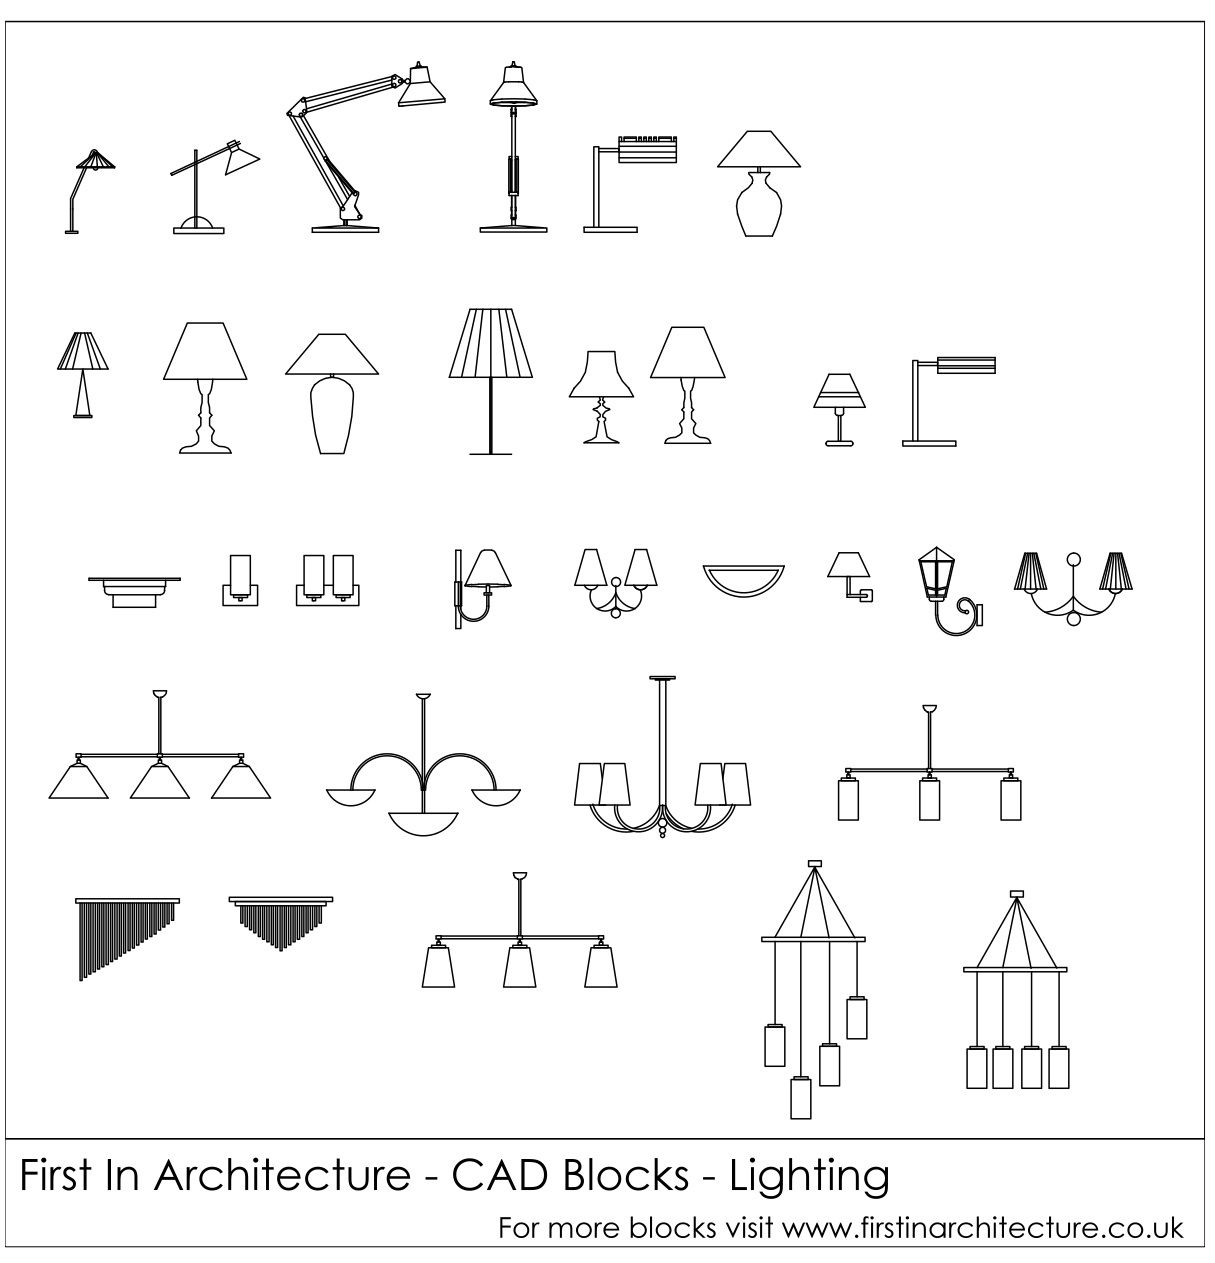 Wall Lamps Autocad Blocks : Free CAD Blocks Lighting via @1starchitecture autocad Pinterest Lamp table, Desk lamp ...